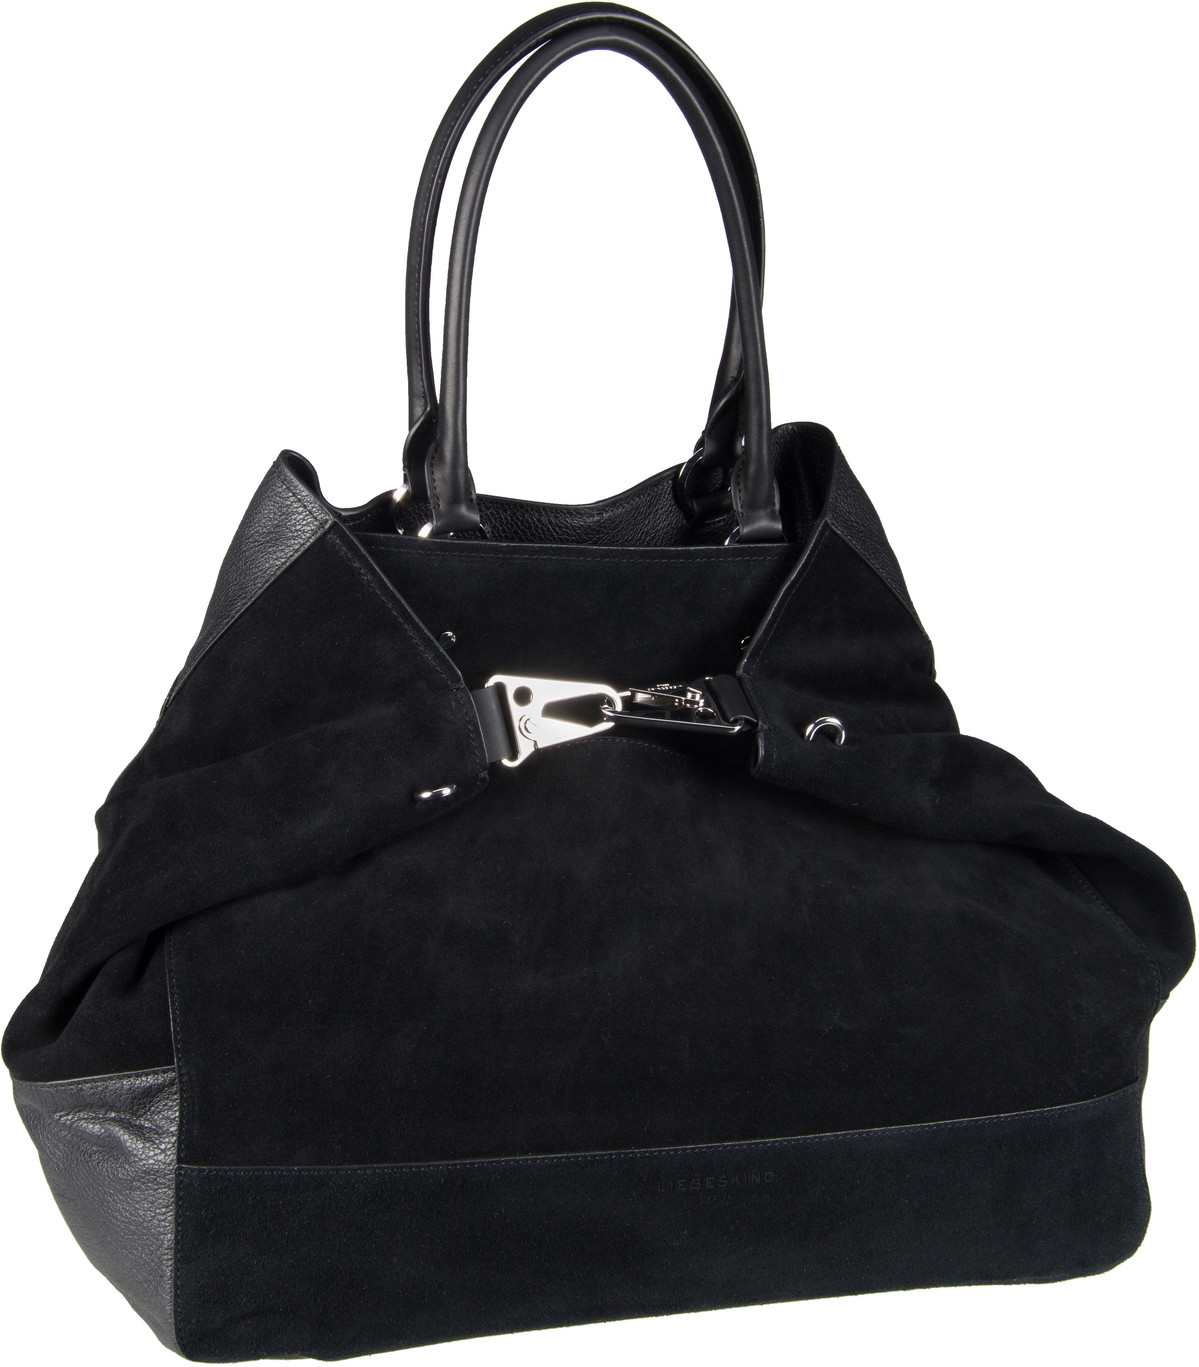 Berlin Handtasche Folded Tote L Black